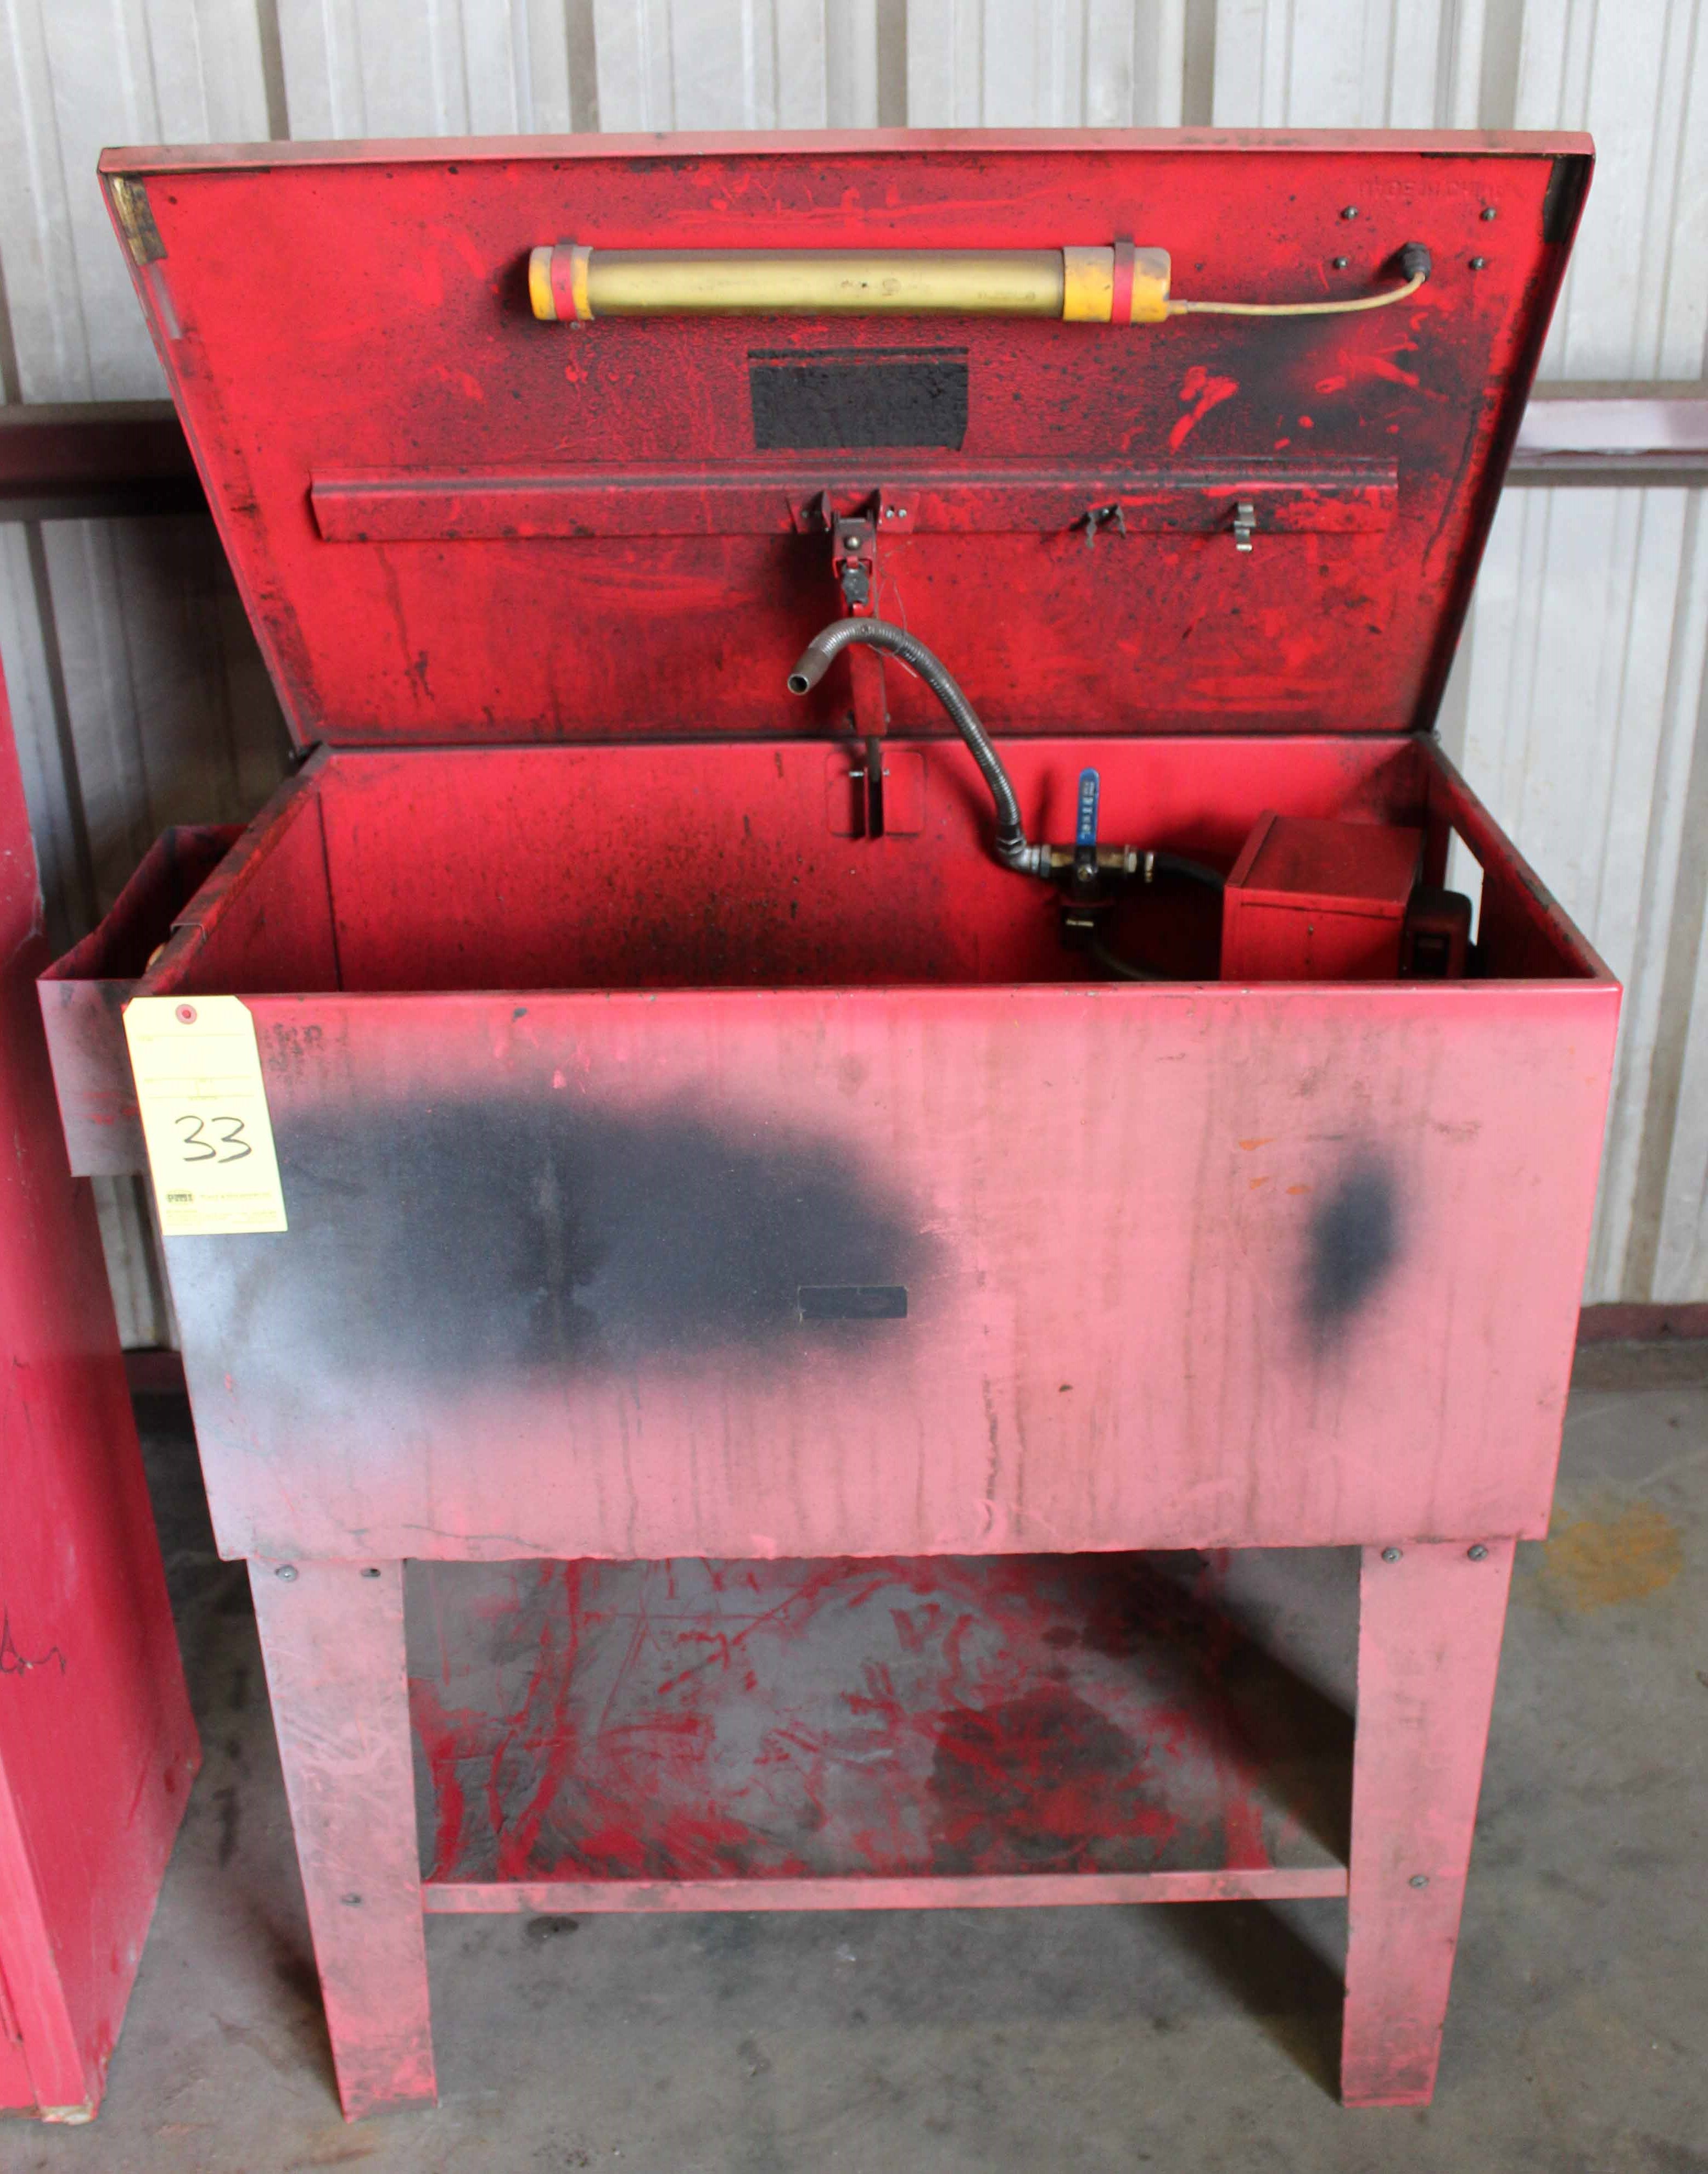 Lot 33 - PARTS WASHER